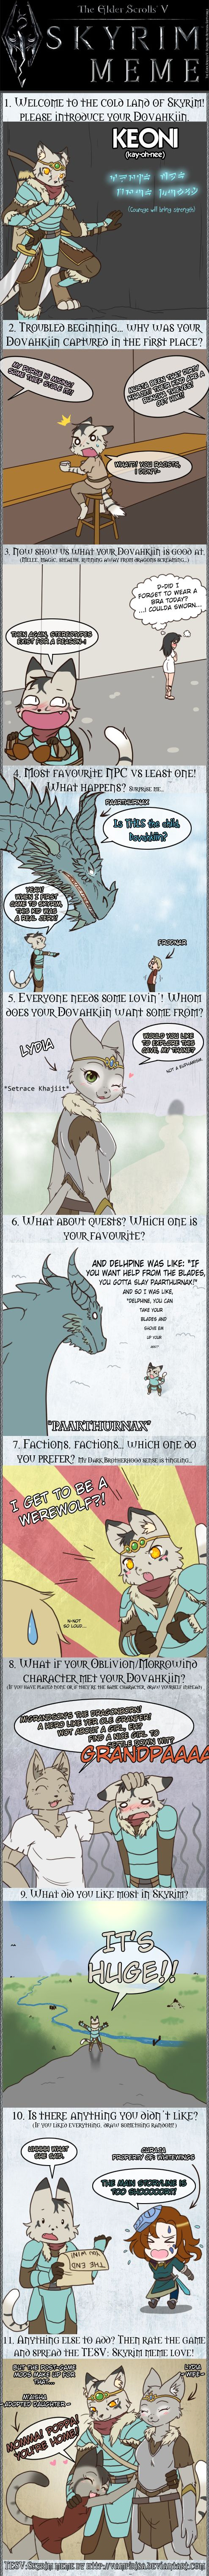 Skyrim Meme feat. Keoni by TheNekoStar on DeviantArt